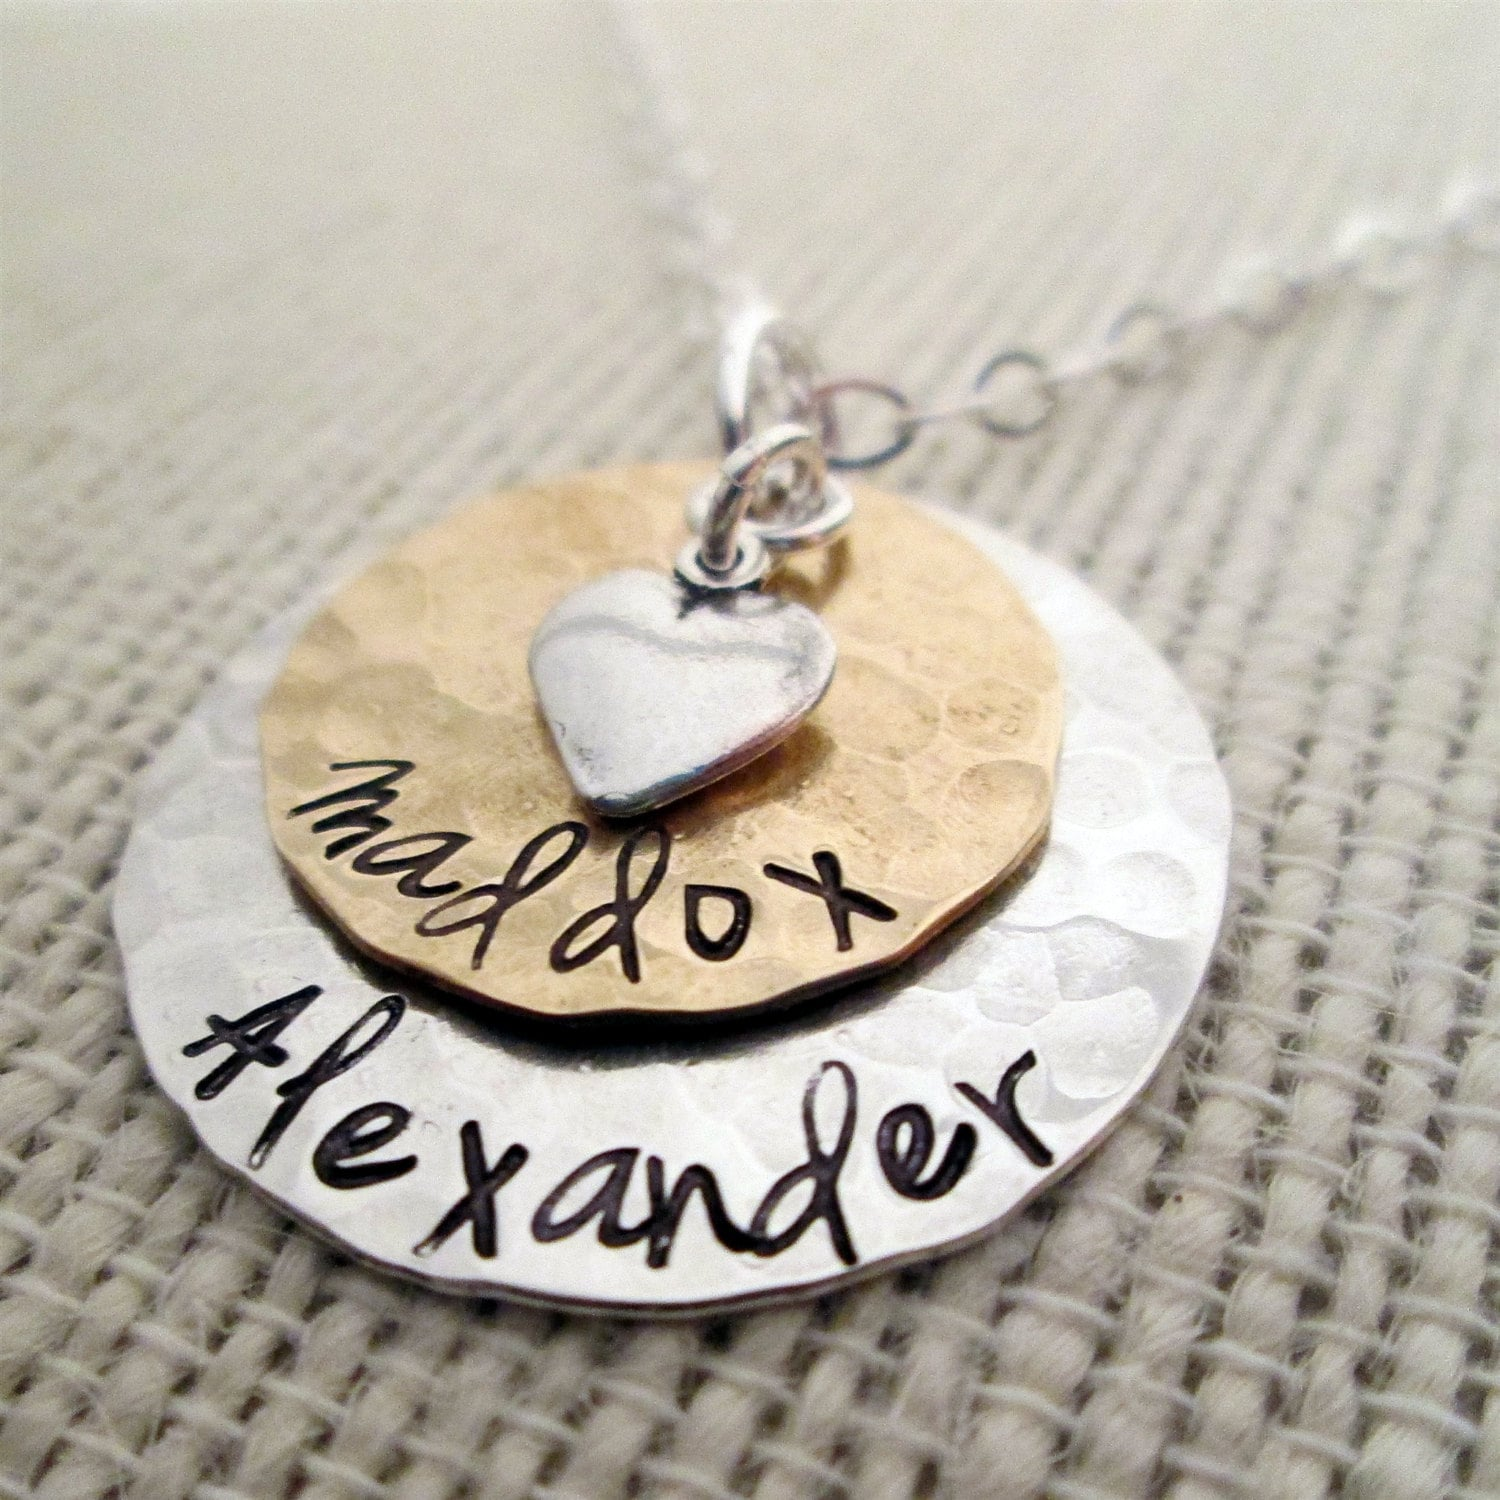 stamped you to the products love keely hand necklace pendant moon